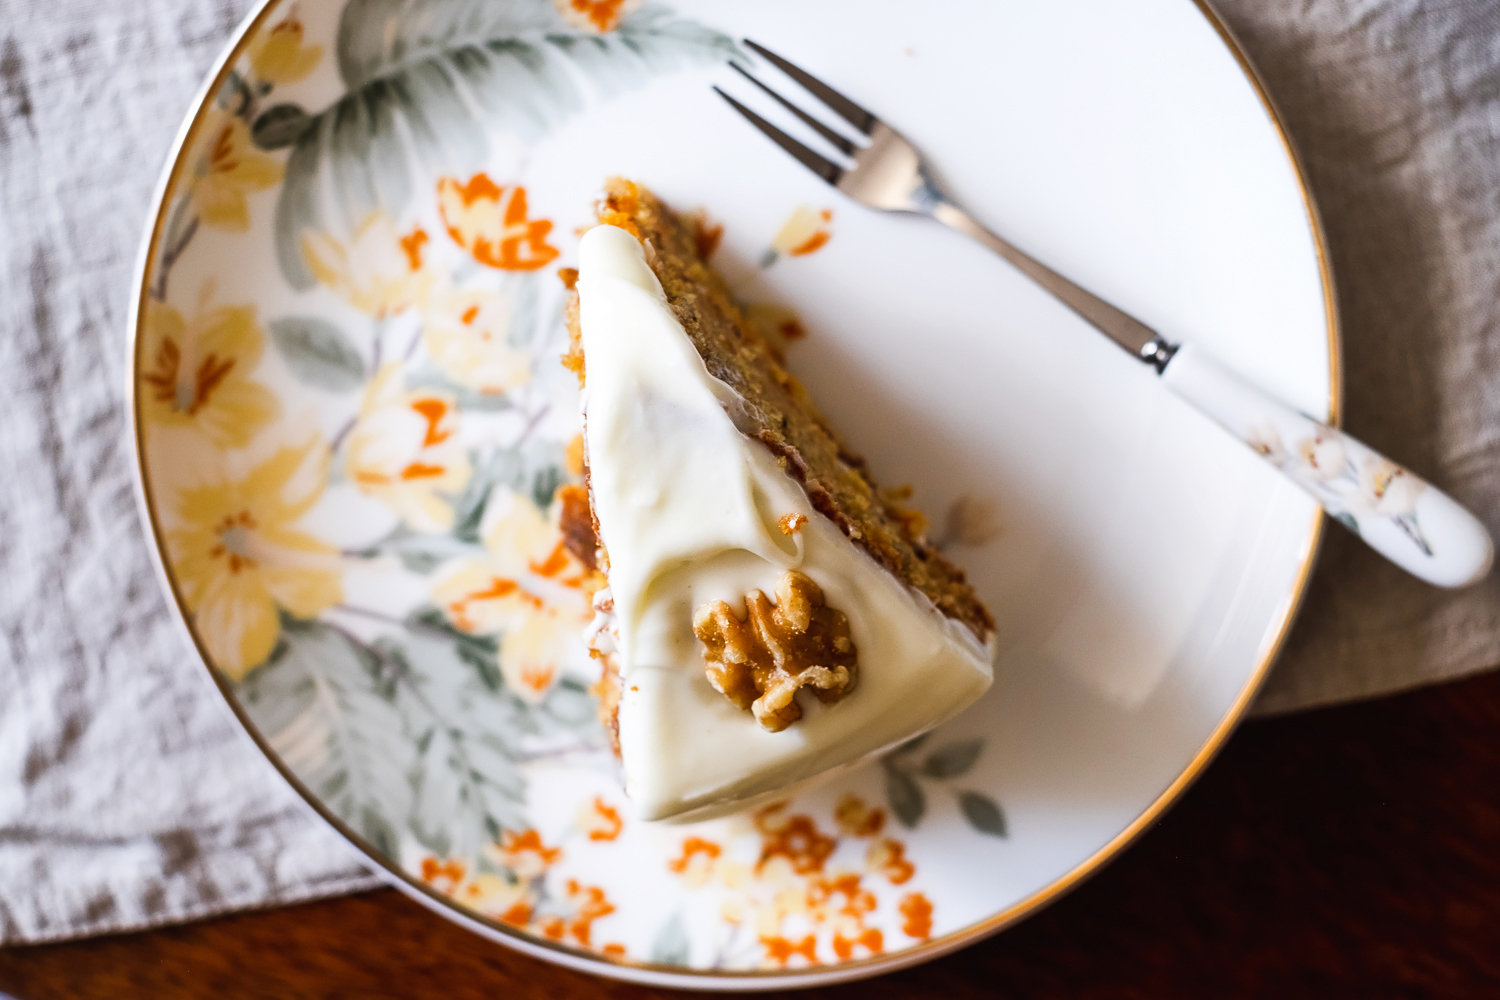 Carrot-Cake-Laura-Ashley-Florentine-4